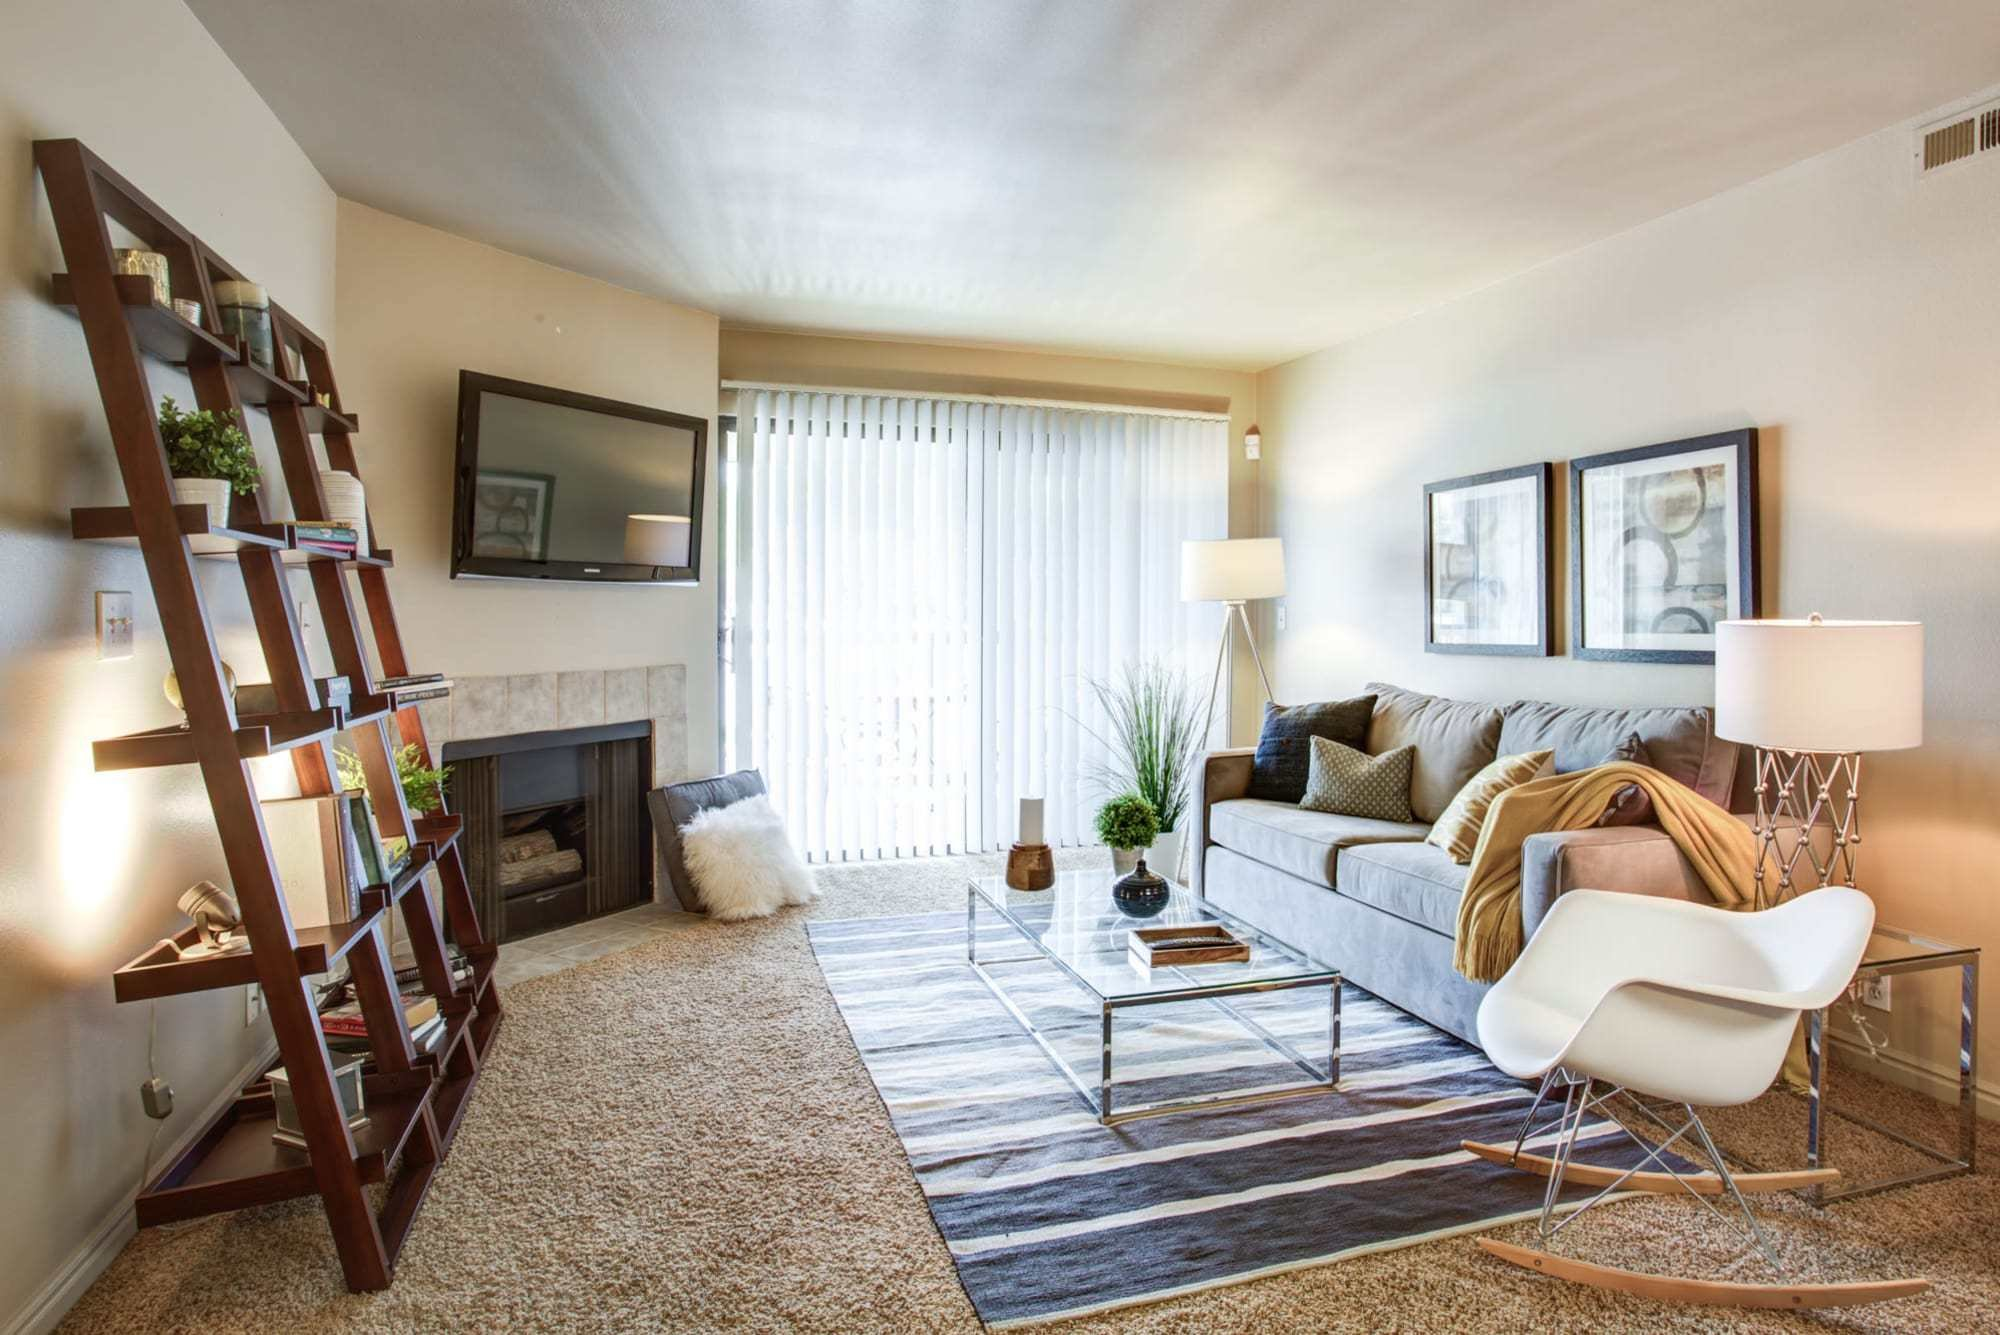 Best 1 2 Bedroom Apartments For Rent In Salt Lake City Ut With Pictures